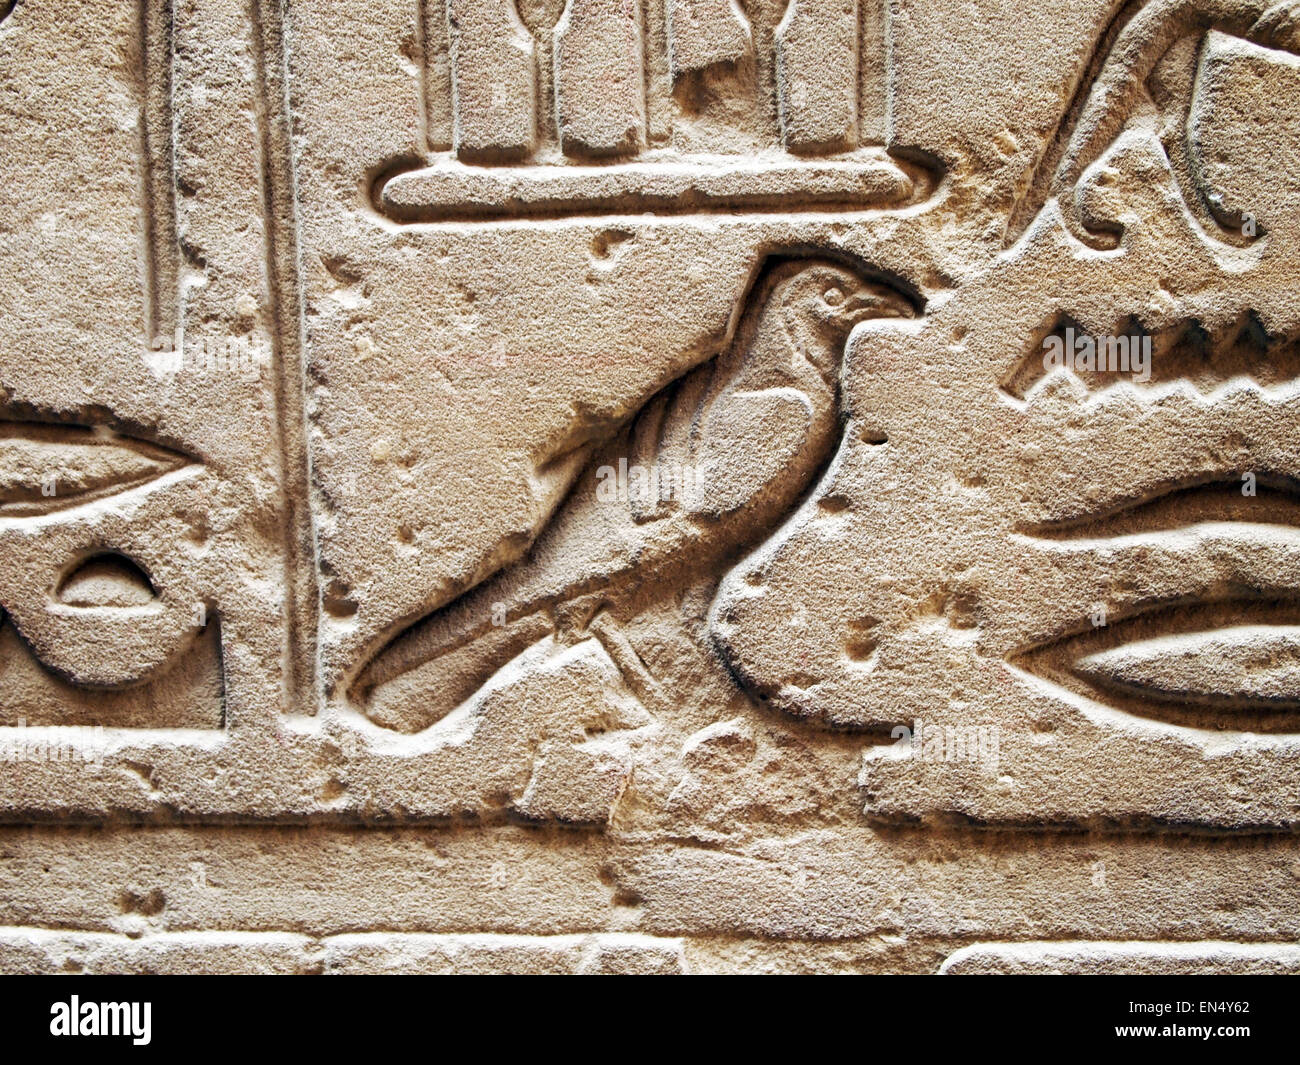 Bird hieroglyph in Egypt. Photography by Qin Xie. - Stock Image